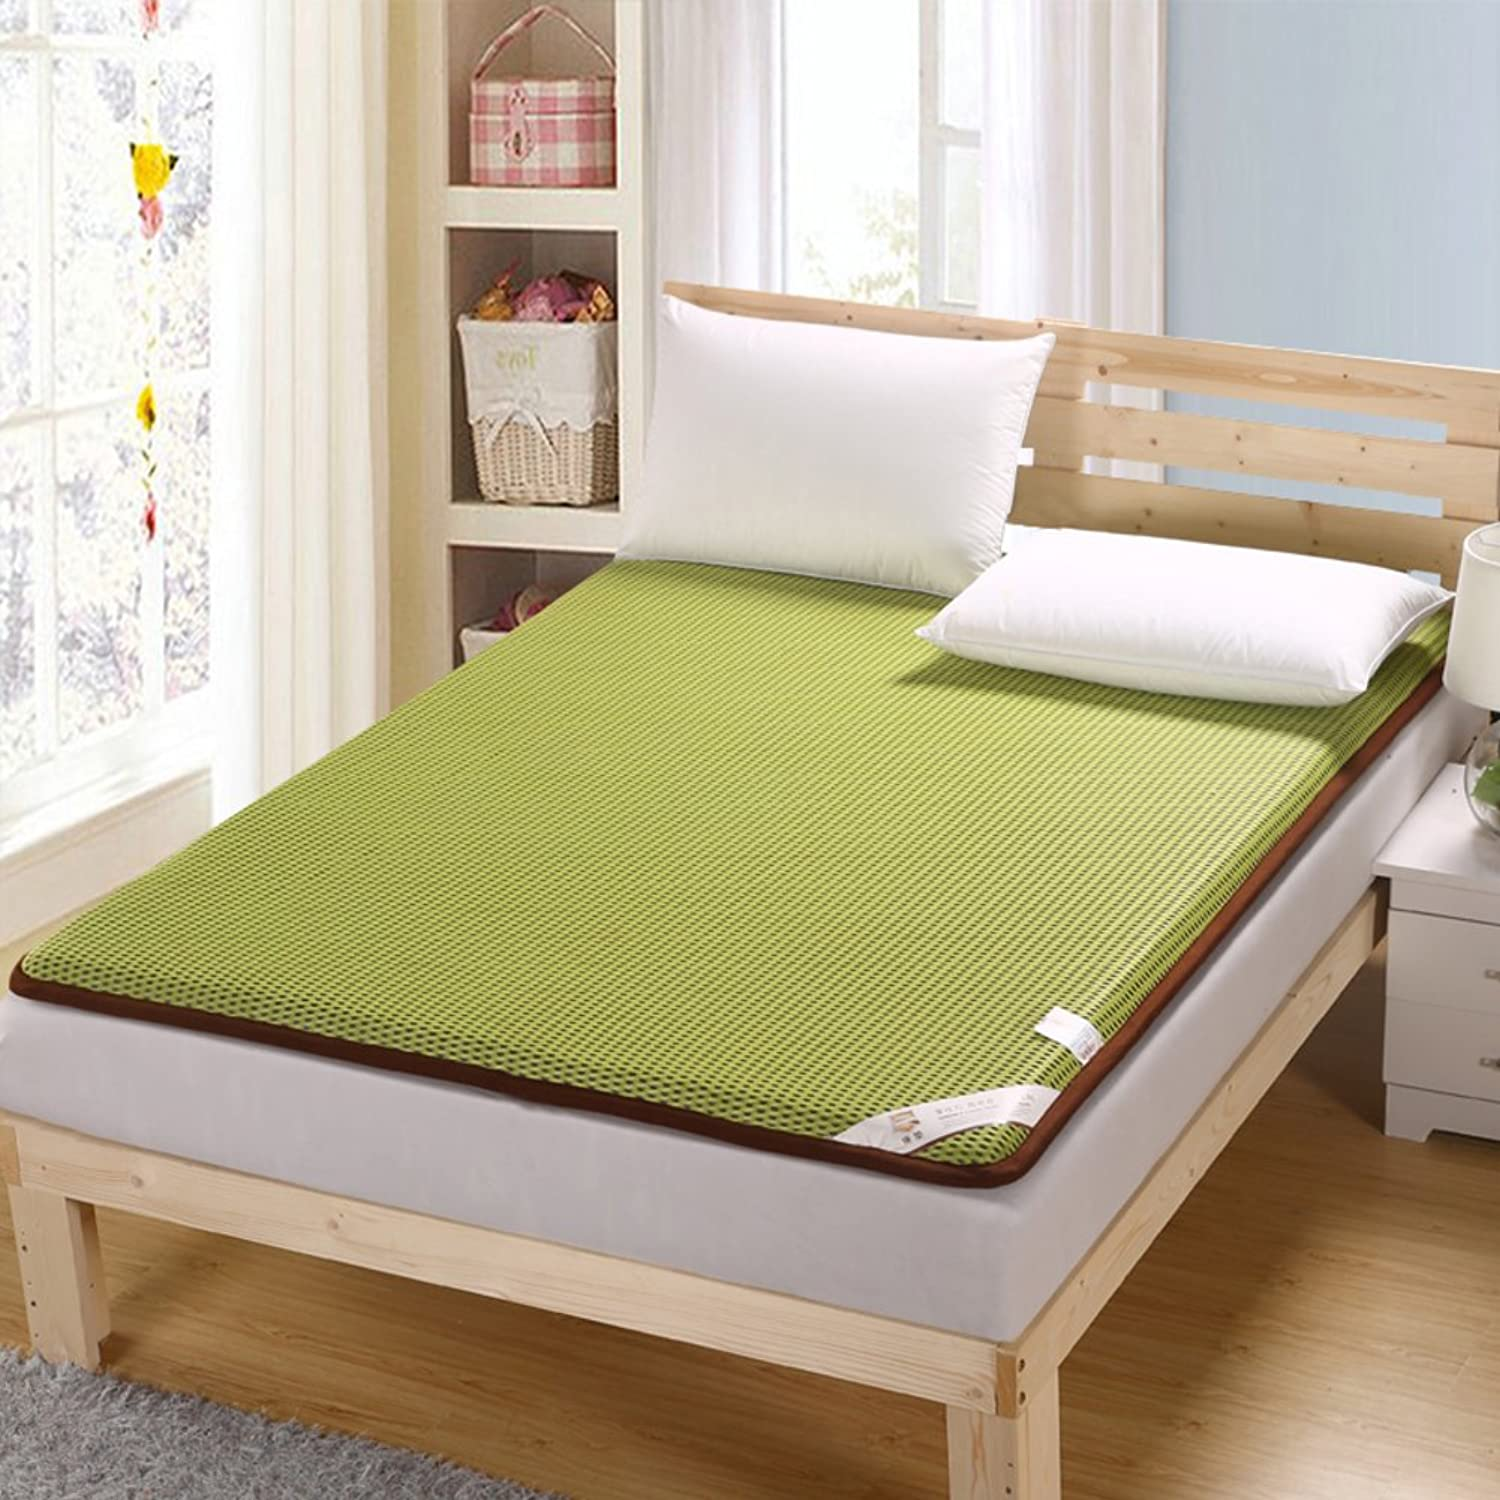 Thicked Tatami Mattress,4d Honeycomb 1.5m 1.8m Single Double Bed Cushion Student Breathable Mattress Tatami Floor mat-Green 100x200cm(39x79inch)